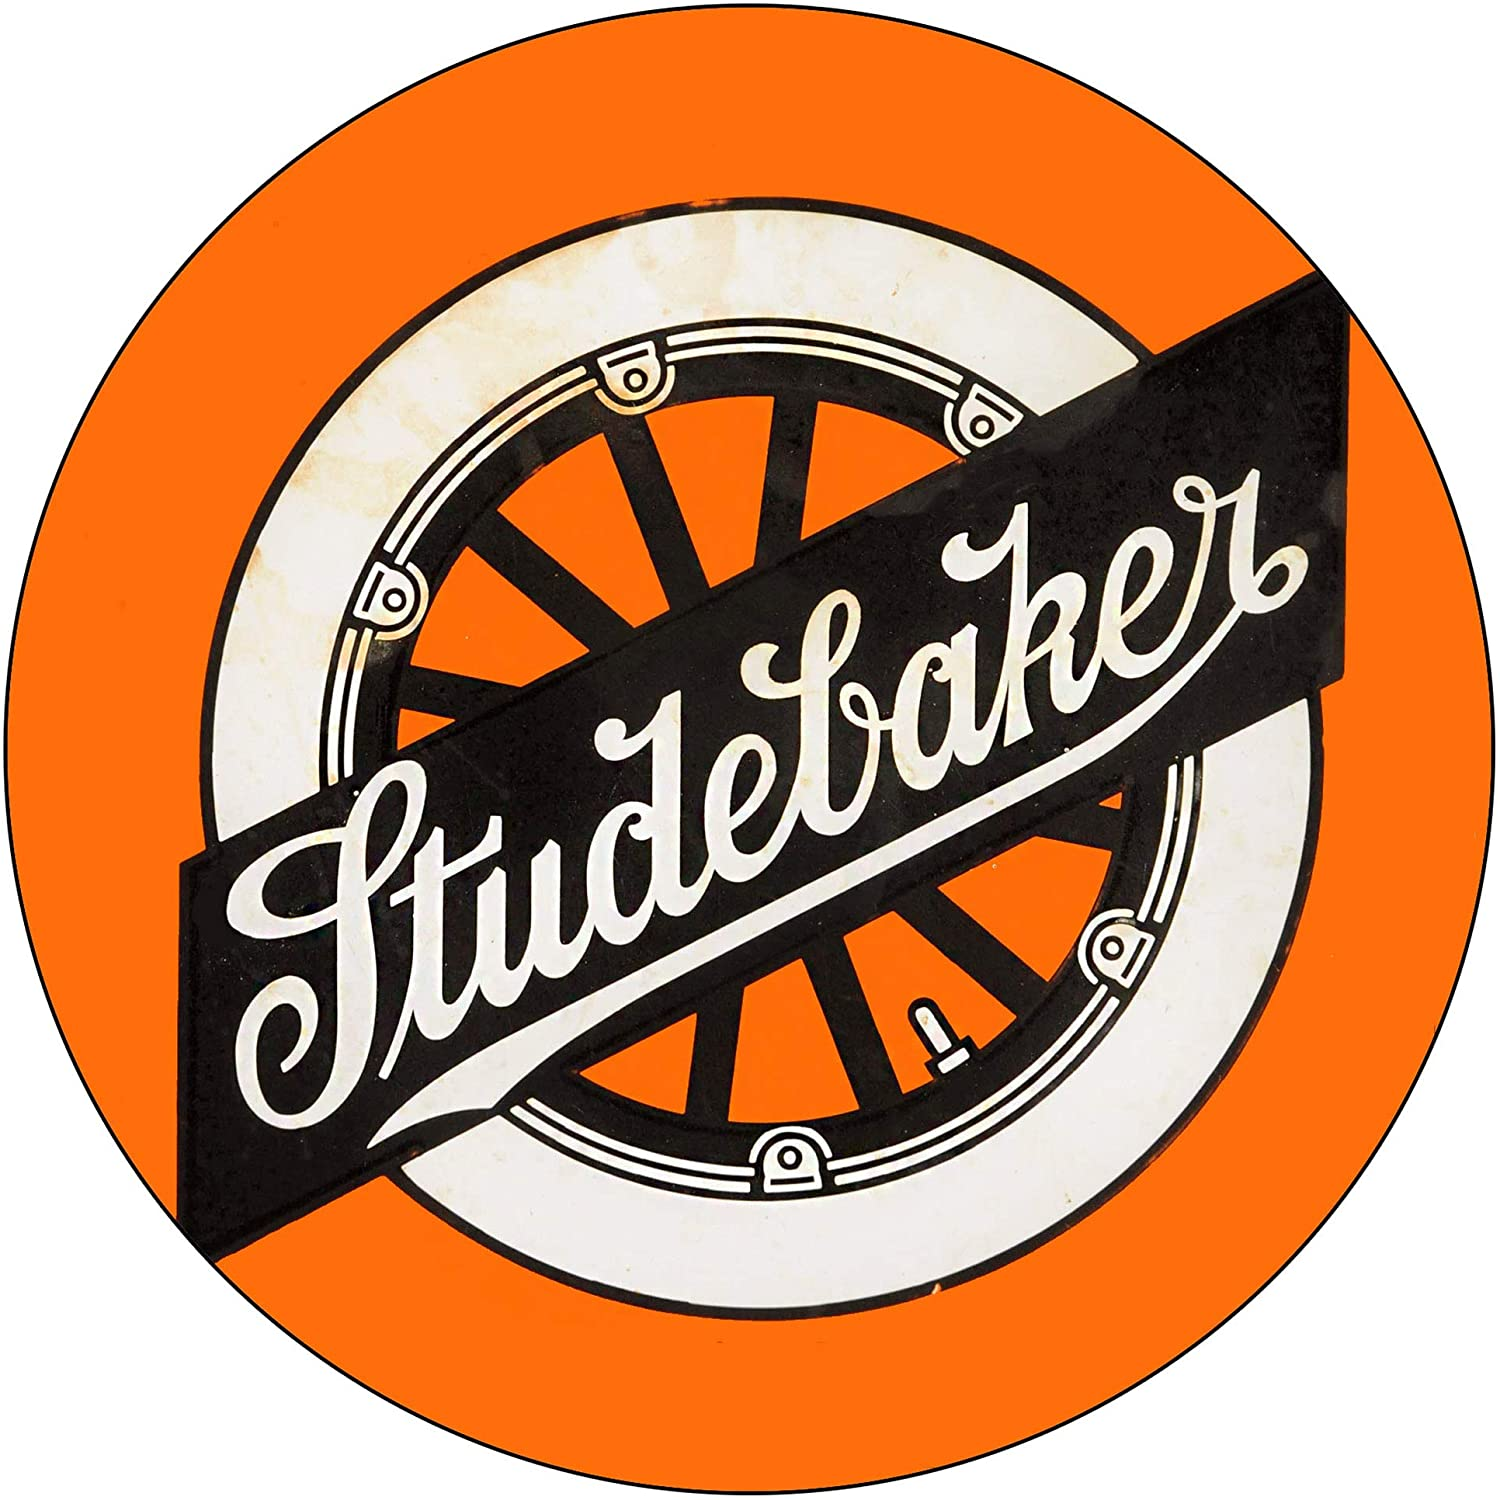 Brotherhood Vintage Gas Sign Reproduction Vintage Metal Signs Round Metal Tin Sign for Garage and Home 8 Inch Diameter – Studebaker Orange Wheel